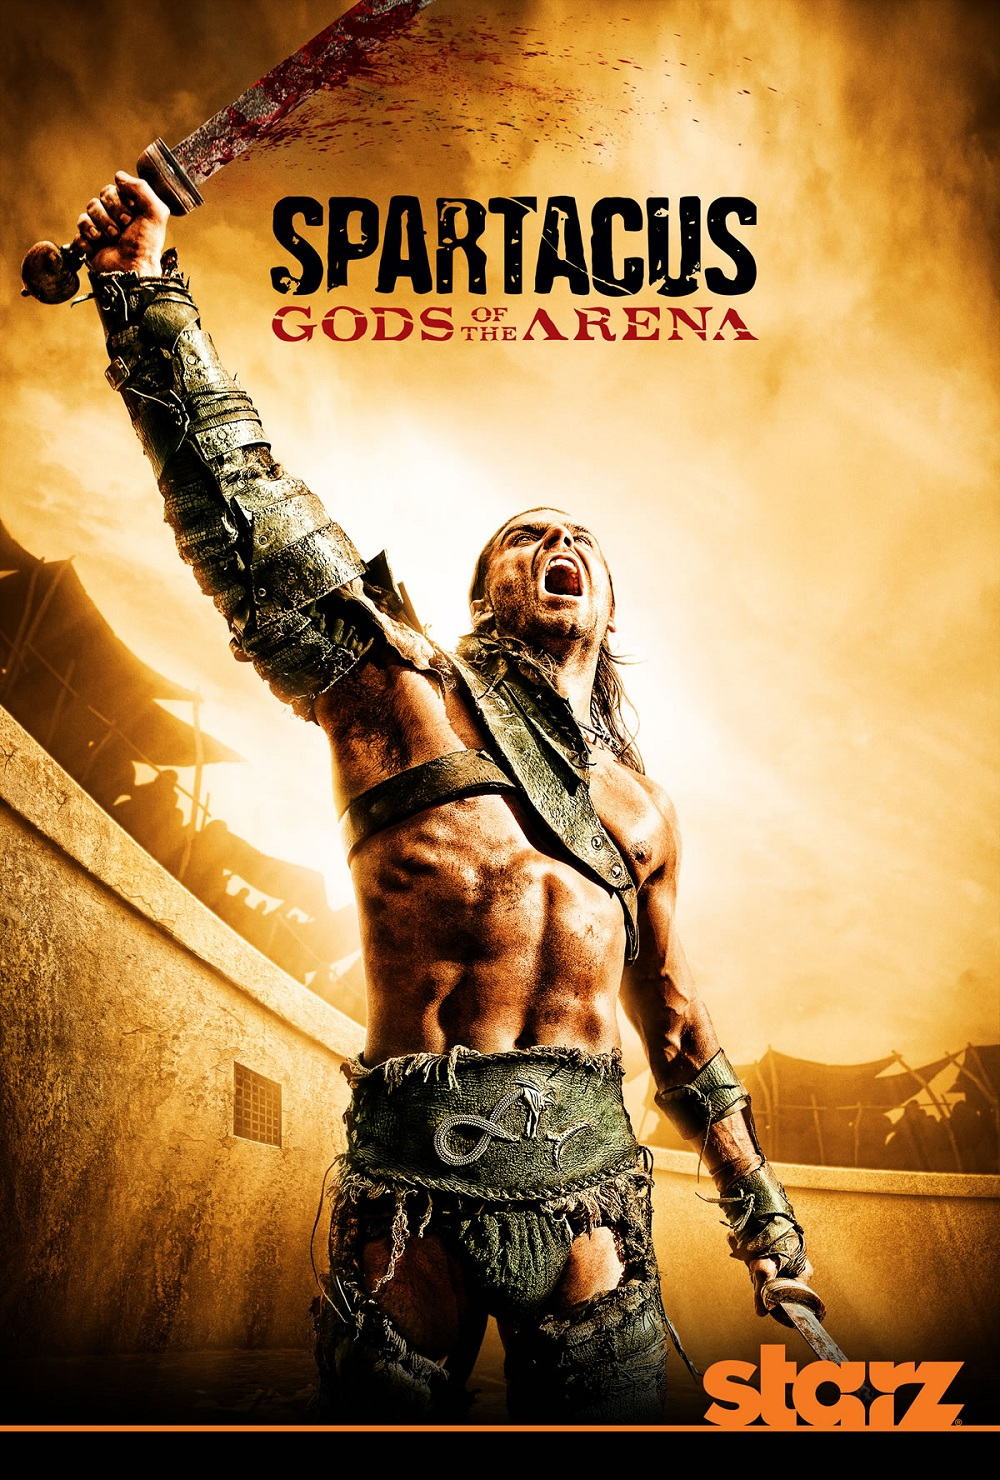 浴血戰士前傳: 競技場之神 Spartacus: Gods of the Arena-DramaQueen電視迷